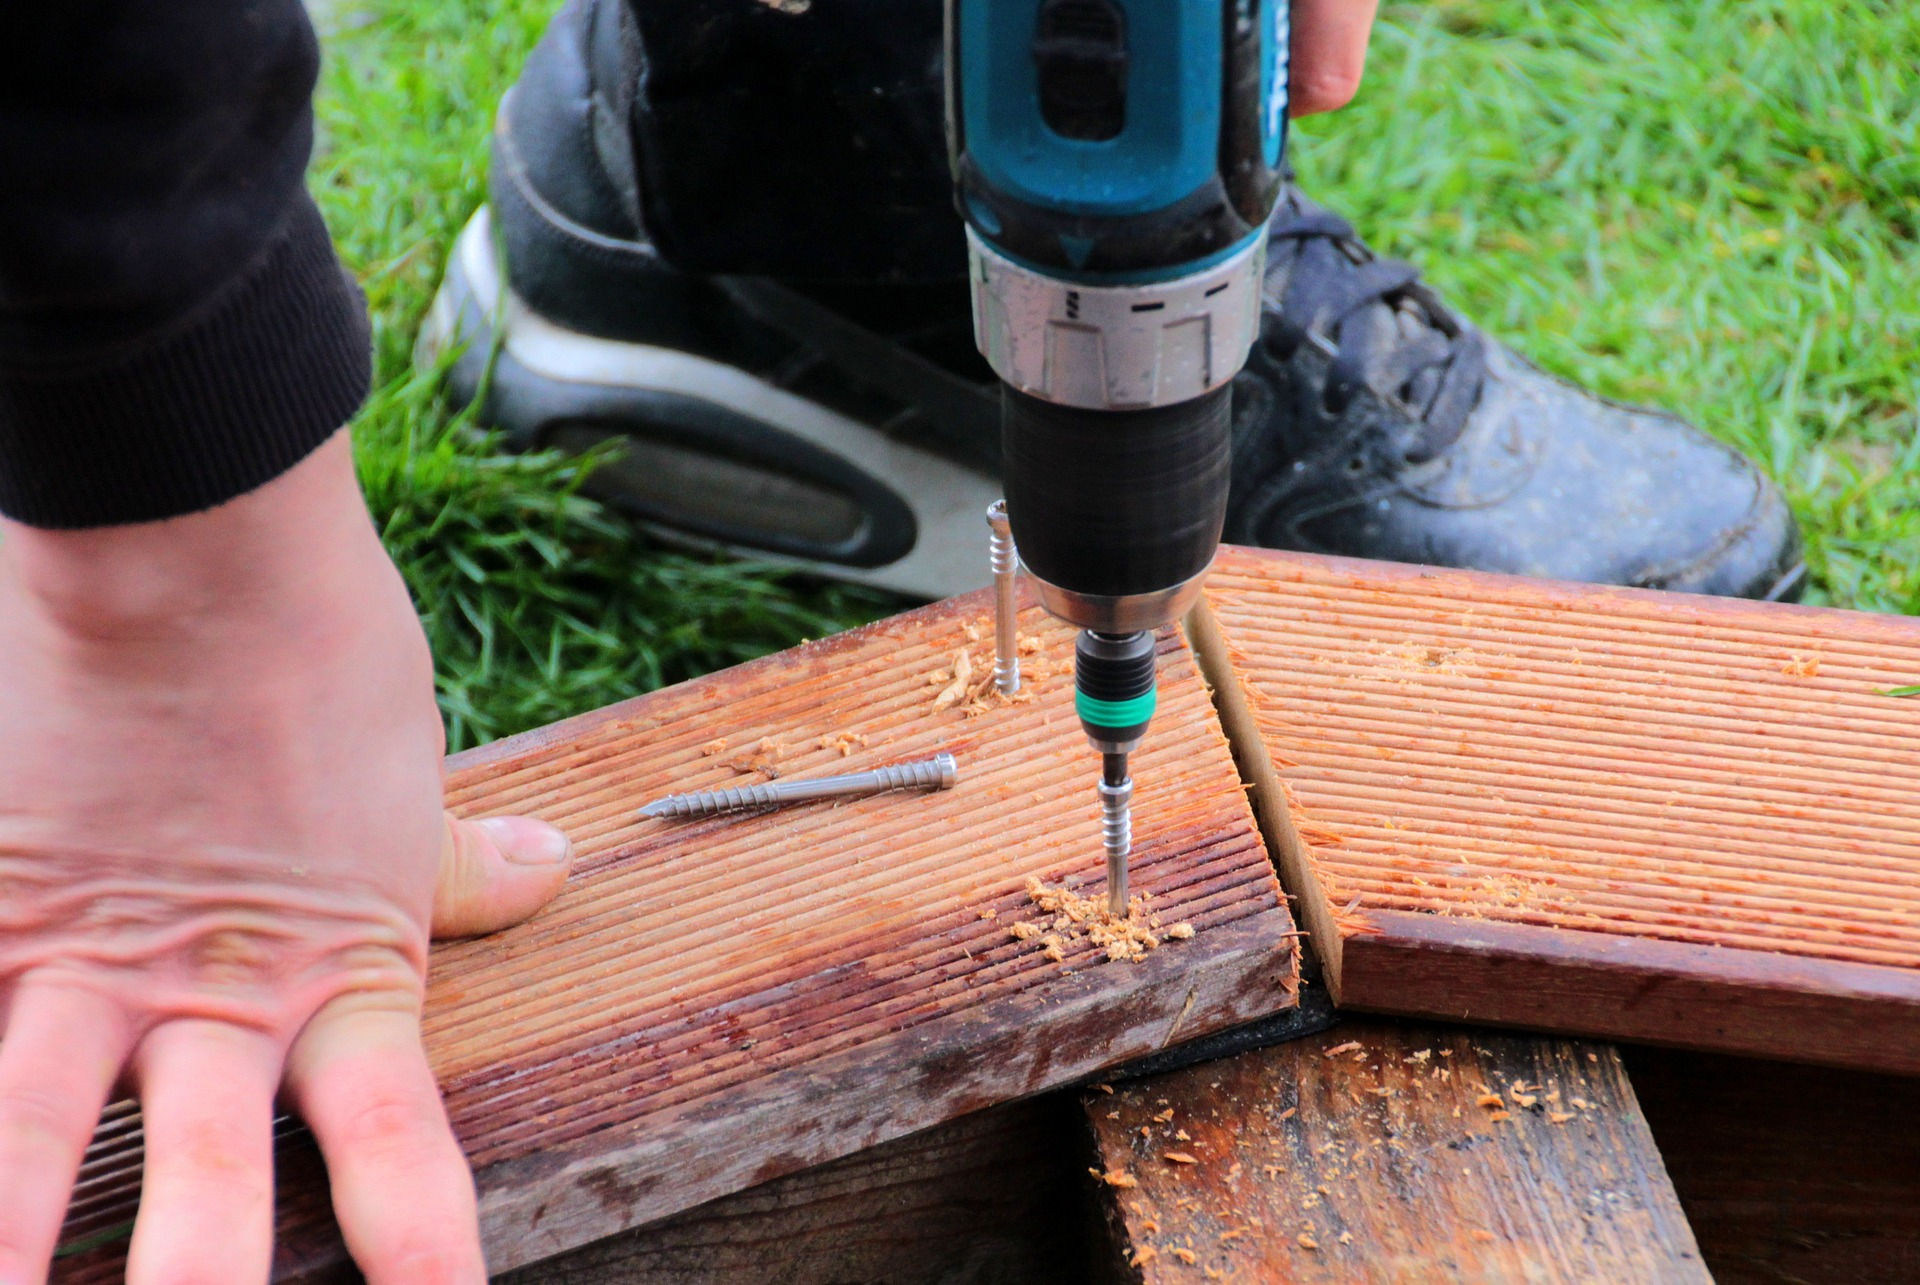 Screwing wooden board with a drill photo